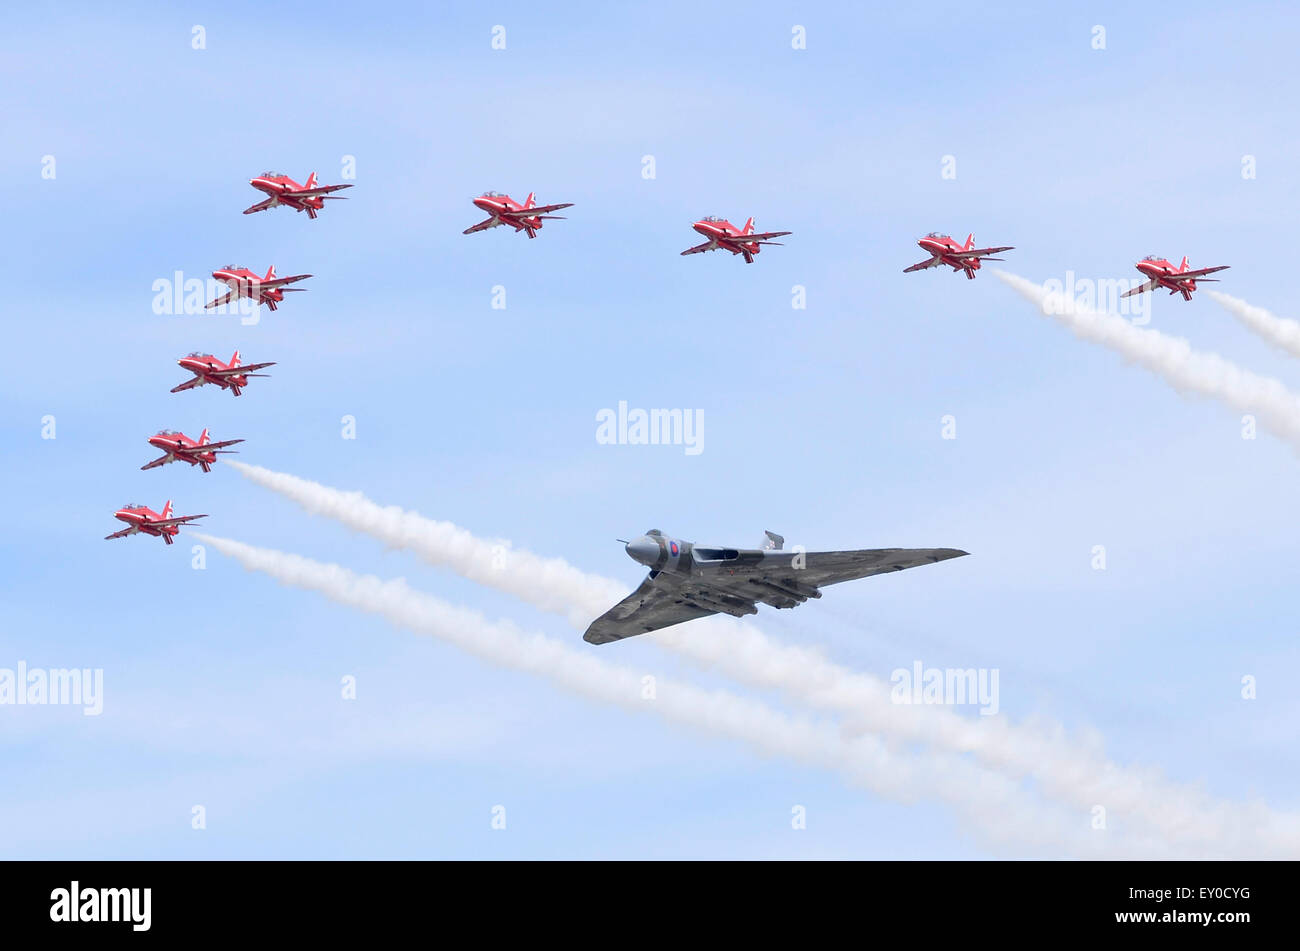 4 X AVRO VULCAN XH558 RED ARROWS FLYPAST FAIRFORD PHOTOGRAPHS